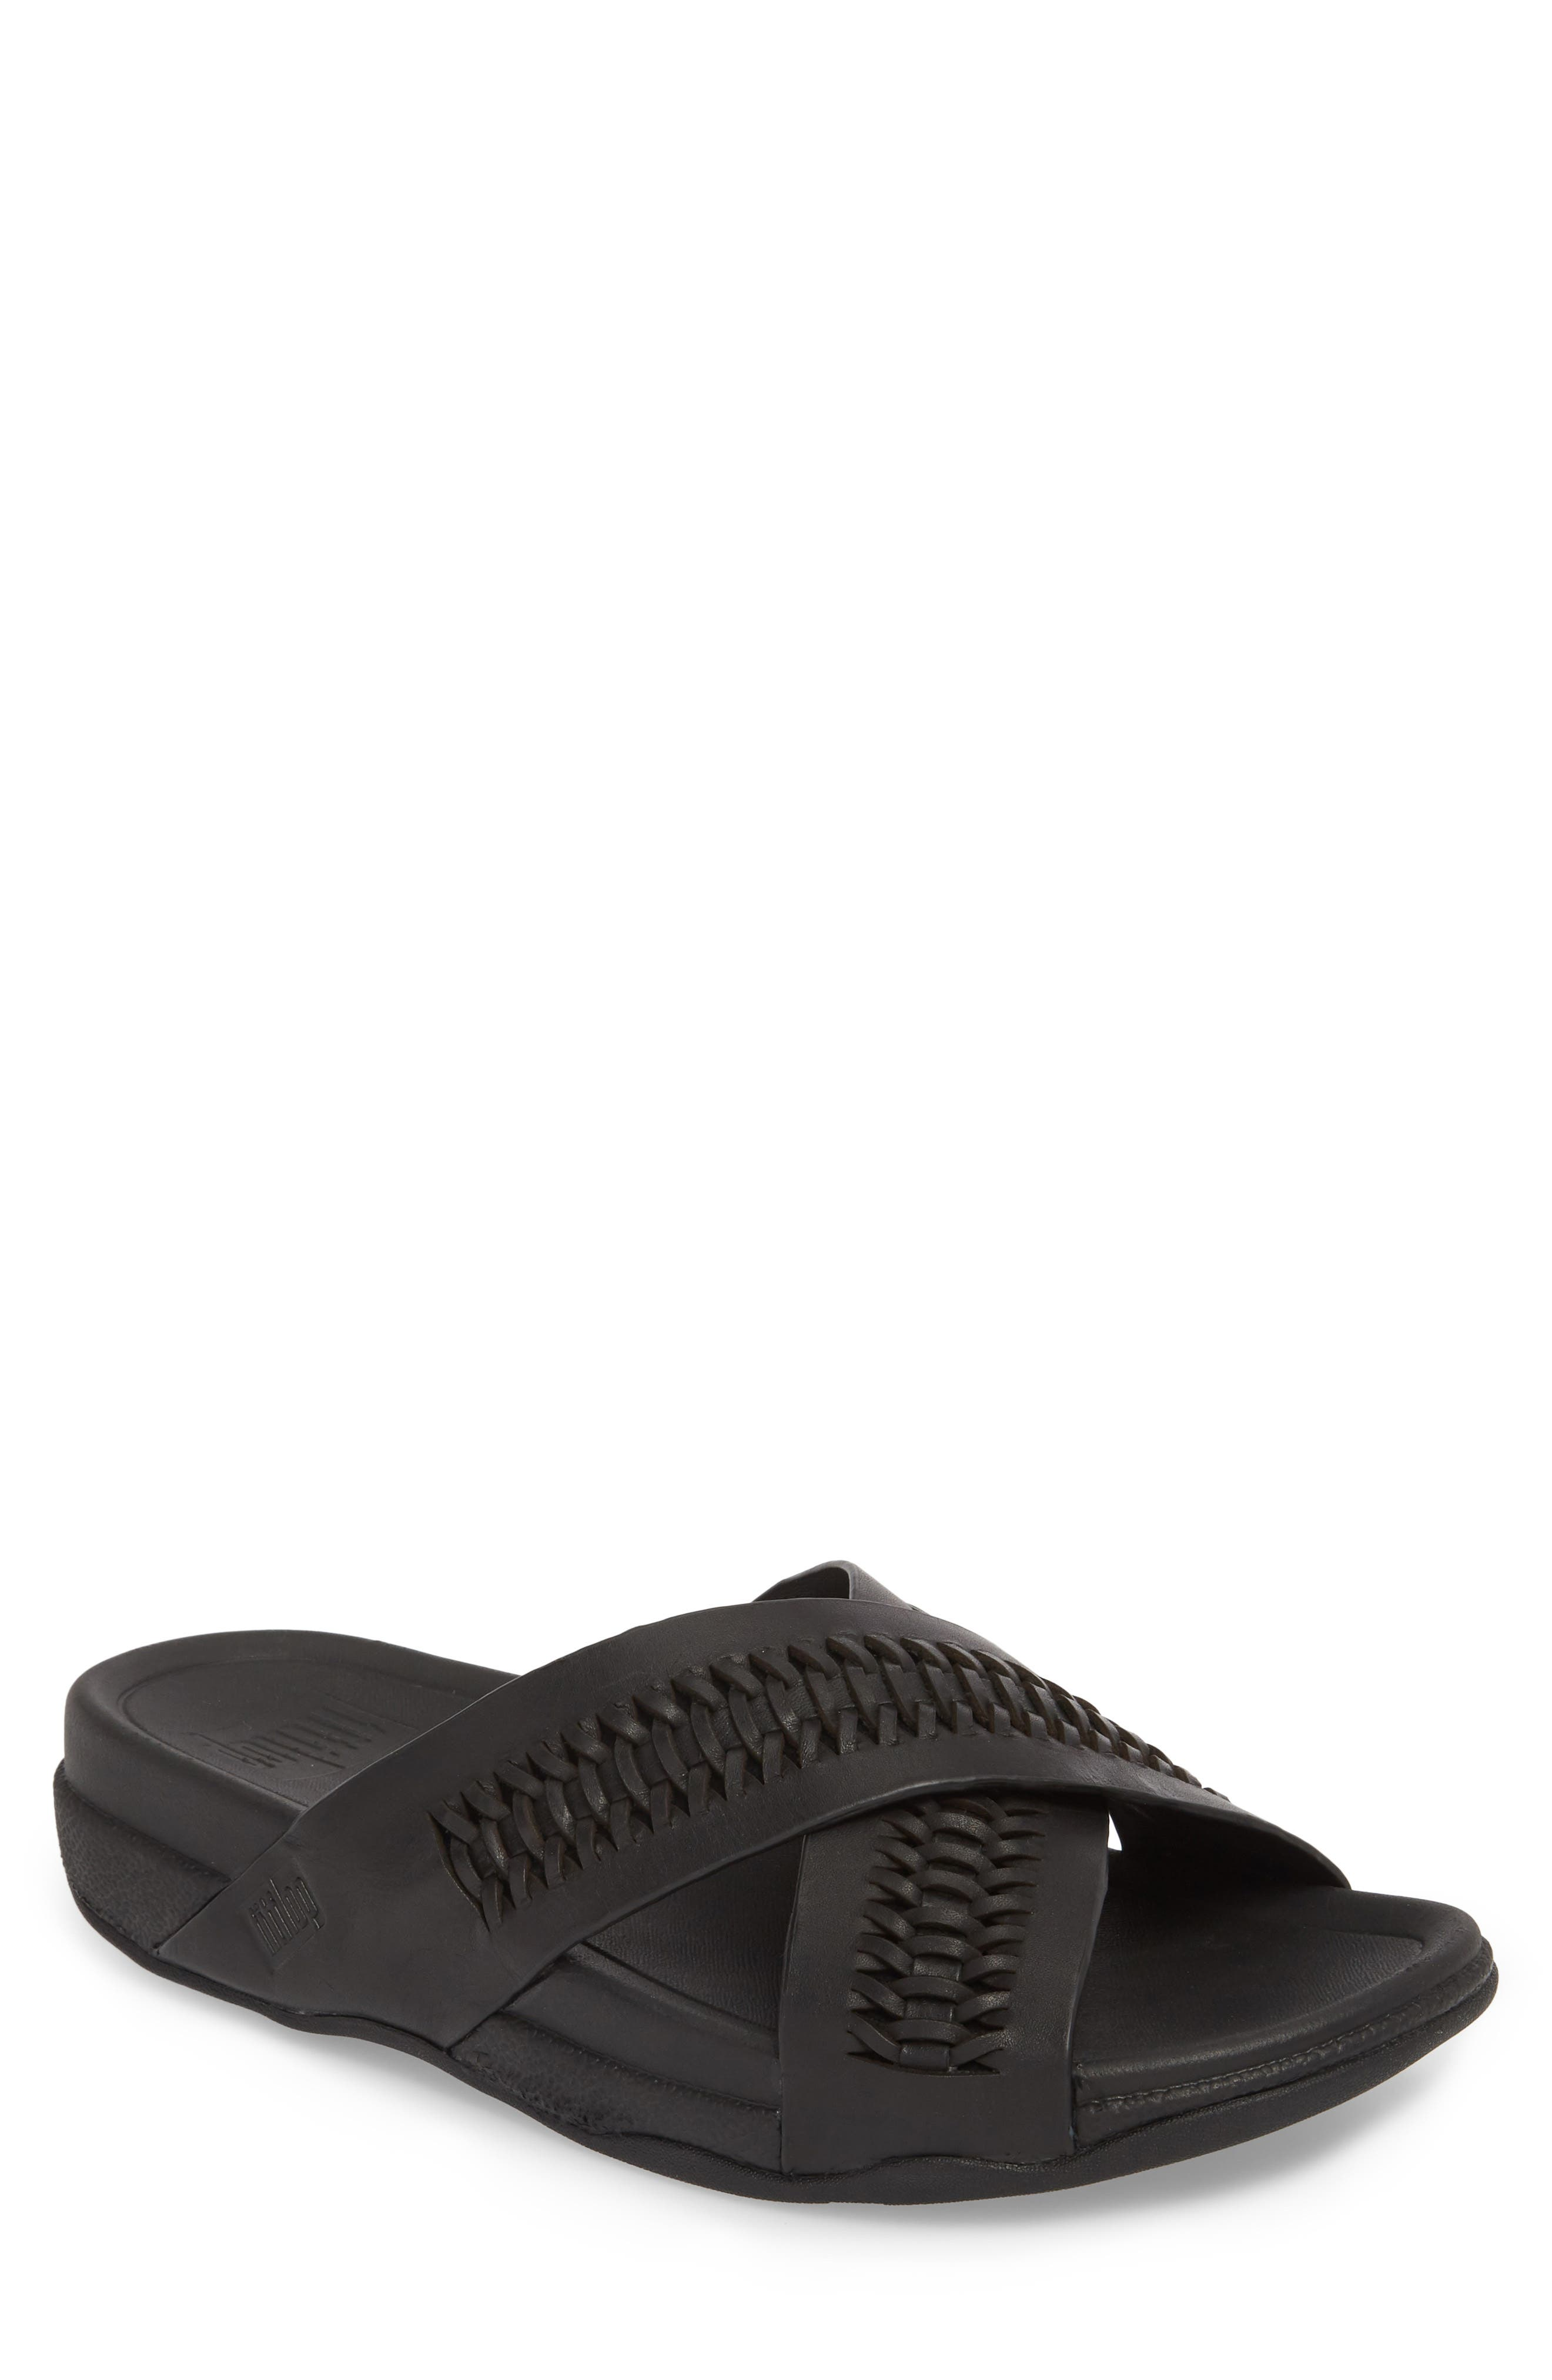 Surfer Slide Sandal,                         Main,                         color, Black